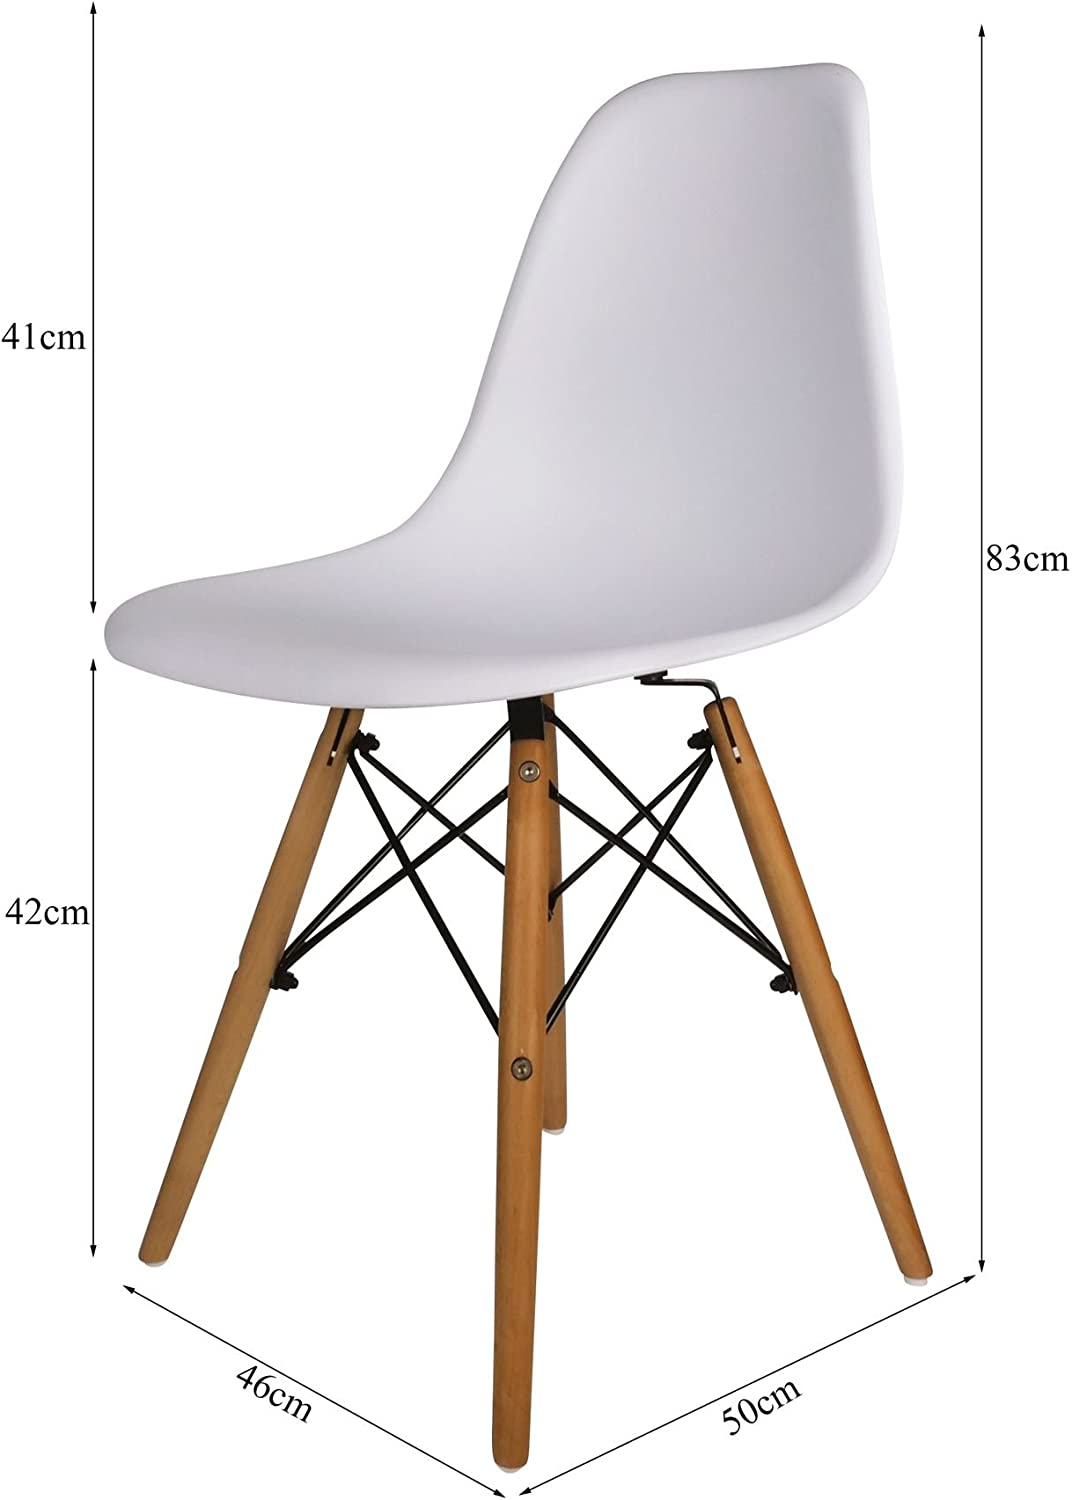 Lounging Kitchen Terrace Patio Office Cosy7 Luna Collection Eiffel Style DSW Modern Dining Chairs Olive Set of 4 Solid Beech Wooden Legs For Living Room Well Blended Colours Comfy Seat